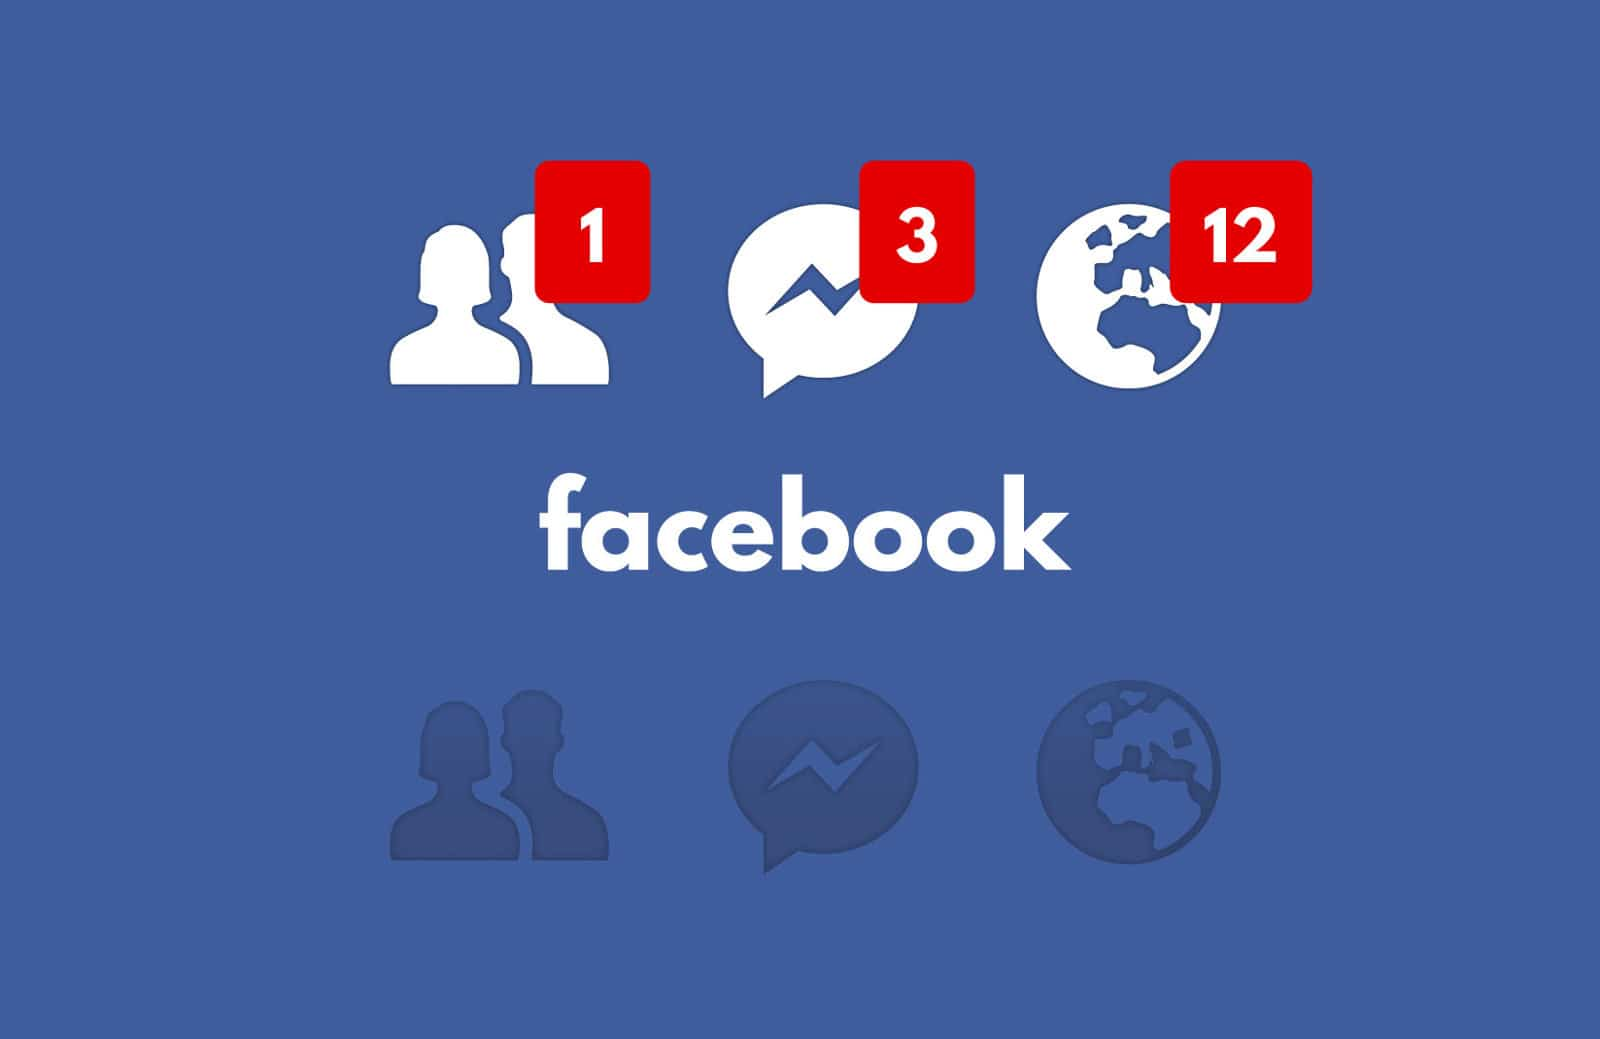 Facebook Telefone - 0800, SAC, Emails, Chat ou Atendimento